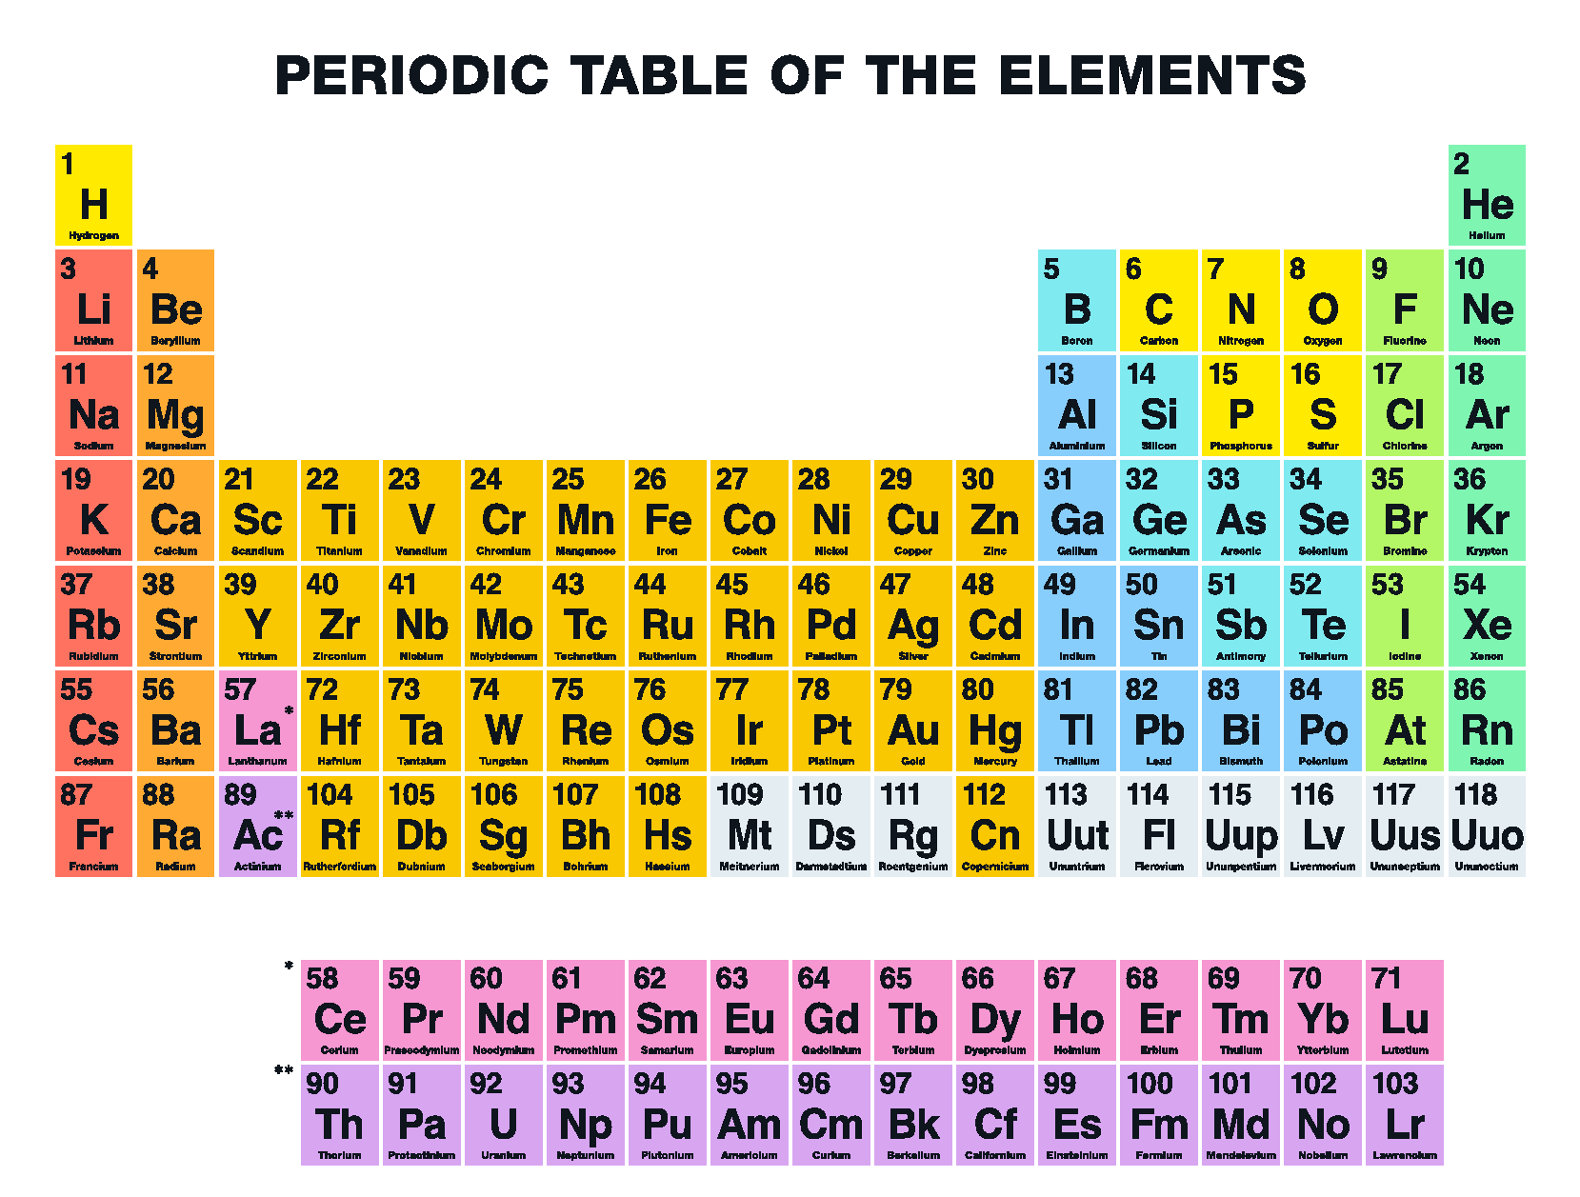 Periodic table of elements man made periodic table man elements made periodic of table made periodic new elements of elements table elements man gamestrikefo Images